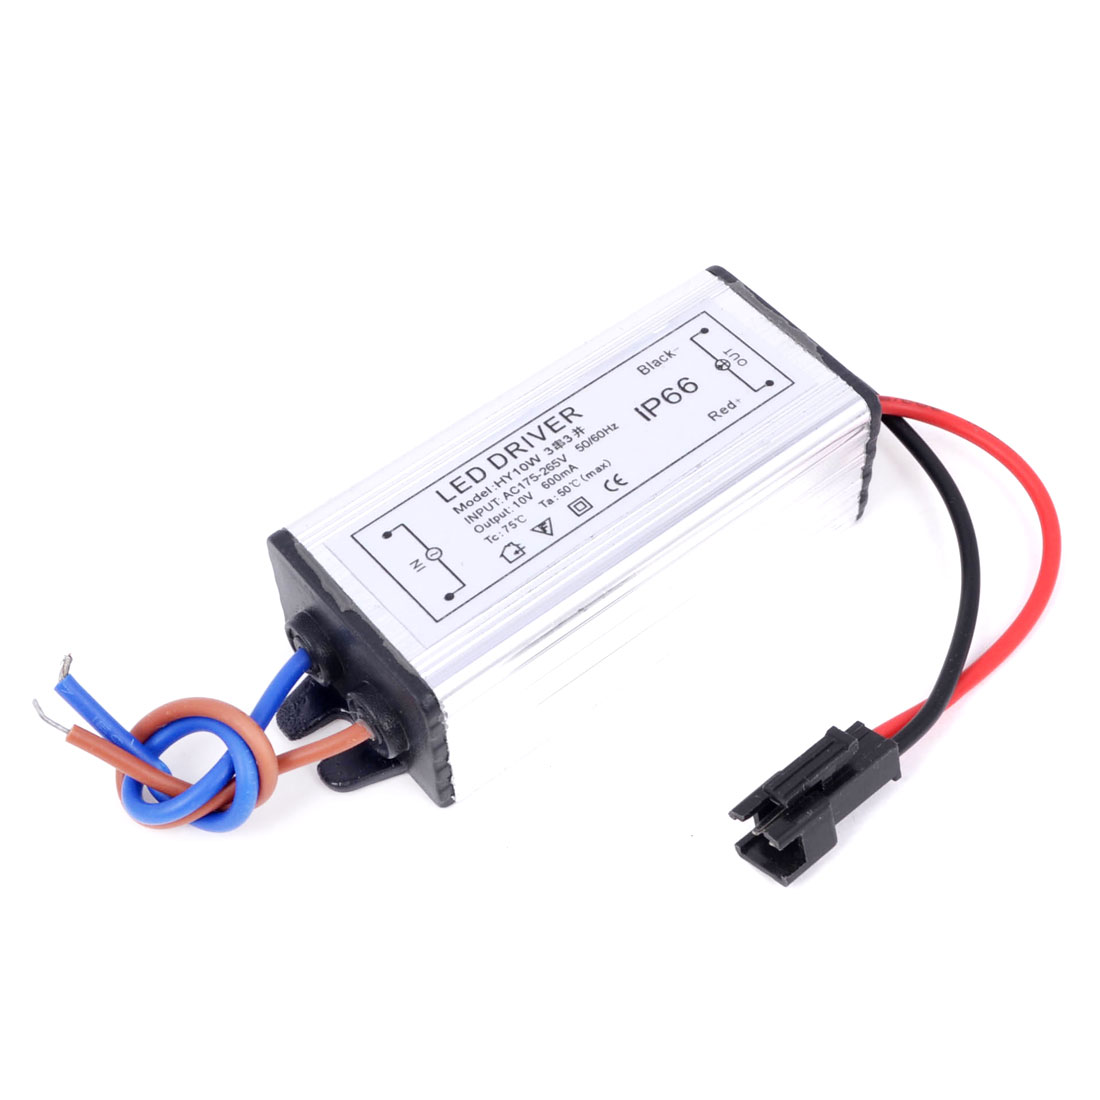 AC 175-265V DC 10V 600mA LED Strip Water Resistant Power Supply Driver